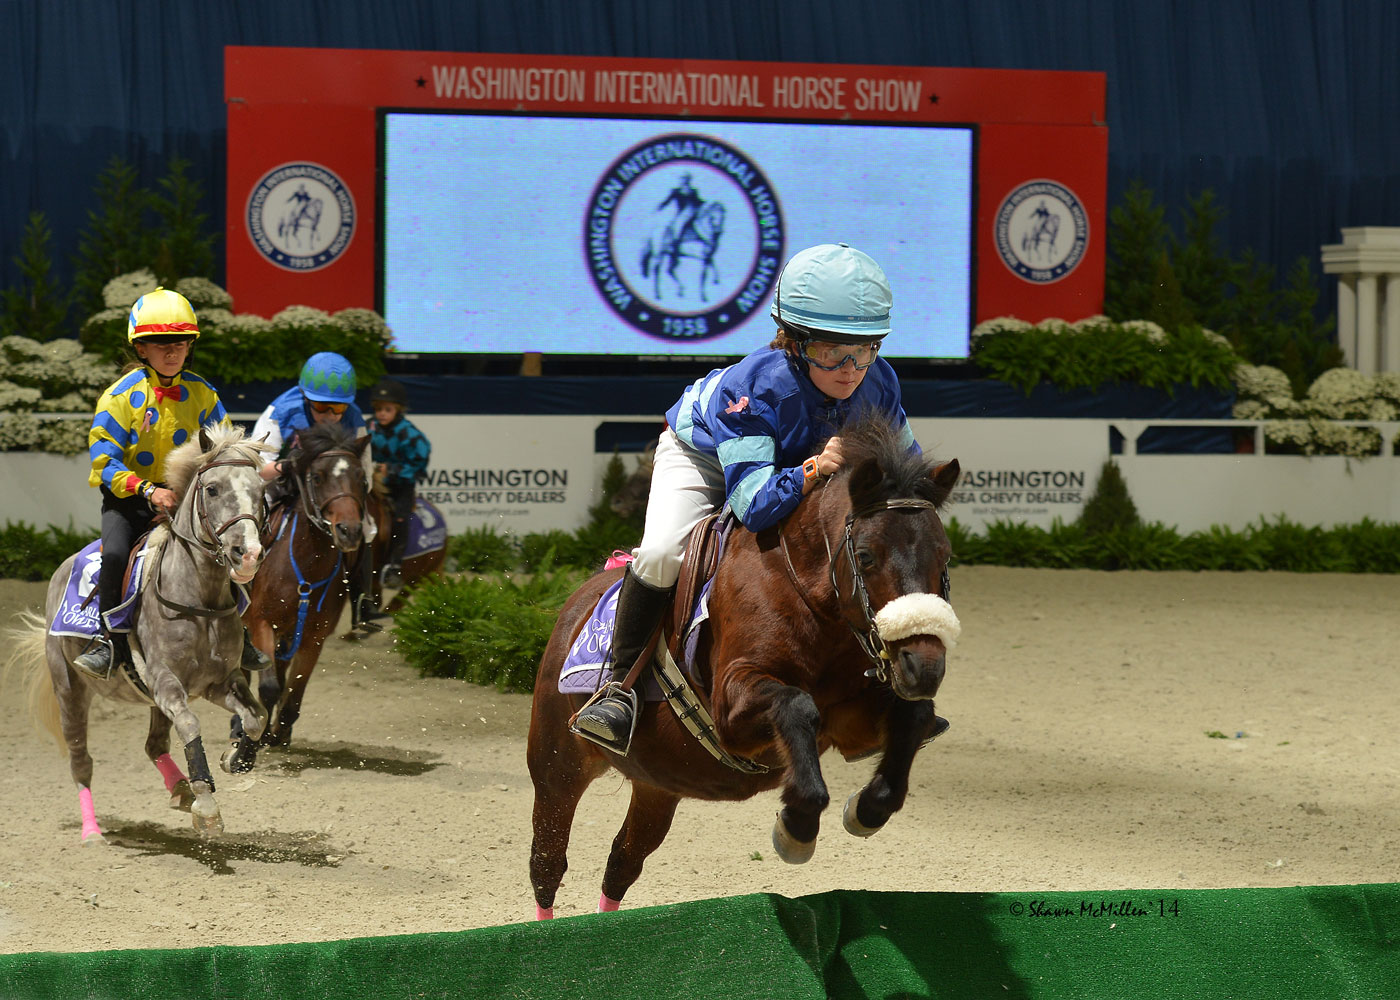 Mini jockeys and Shetland ponies race to the finish line during the 2015 WIHS Shetland Pony Steeplechase Championship.